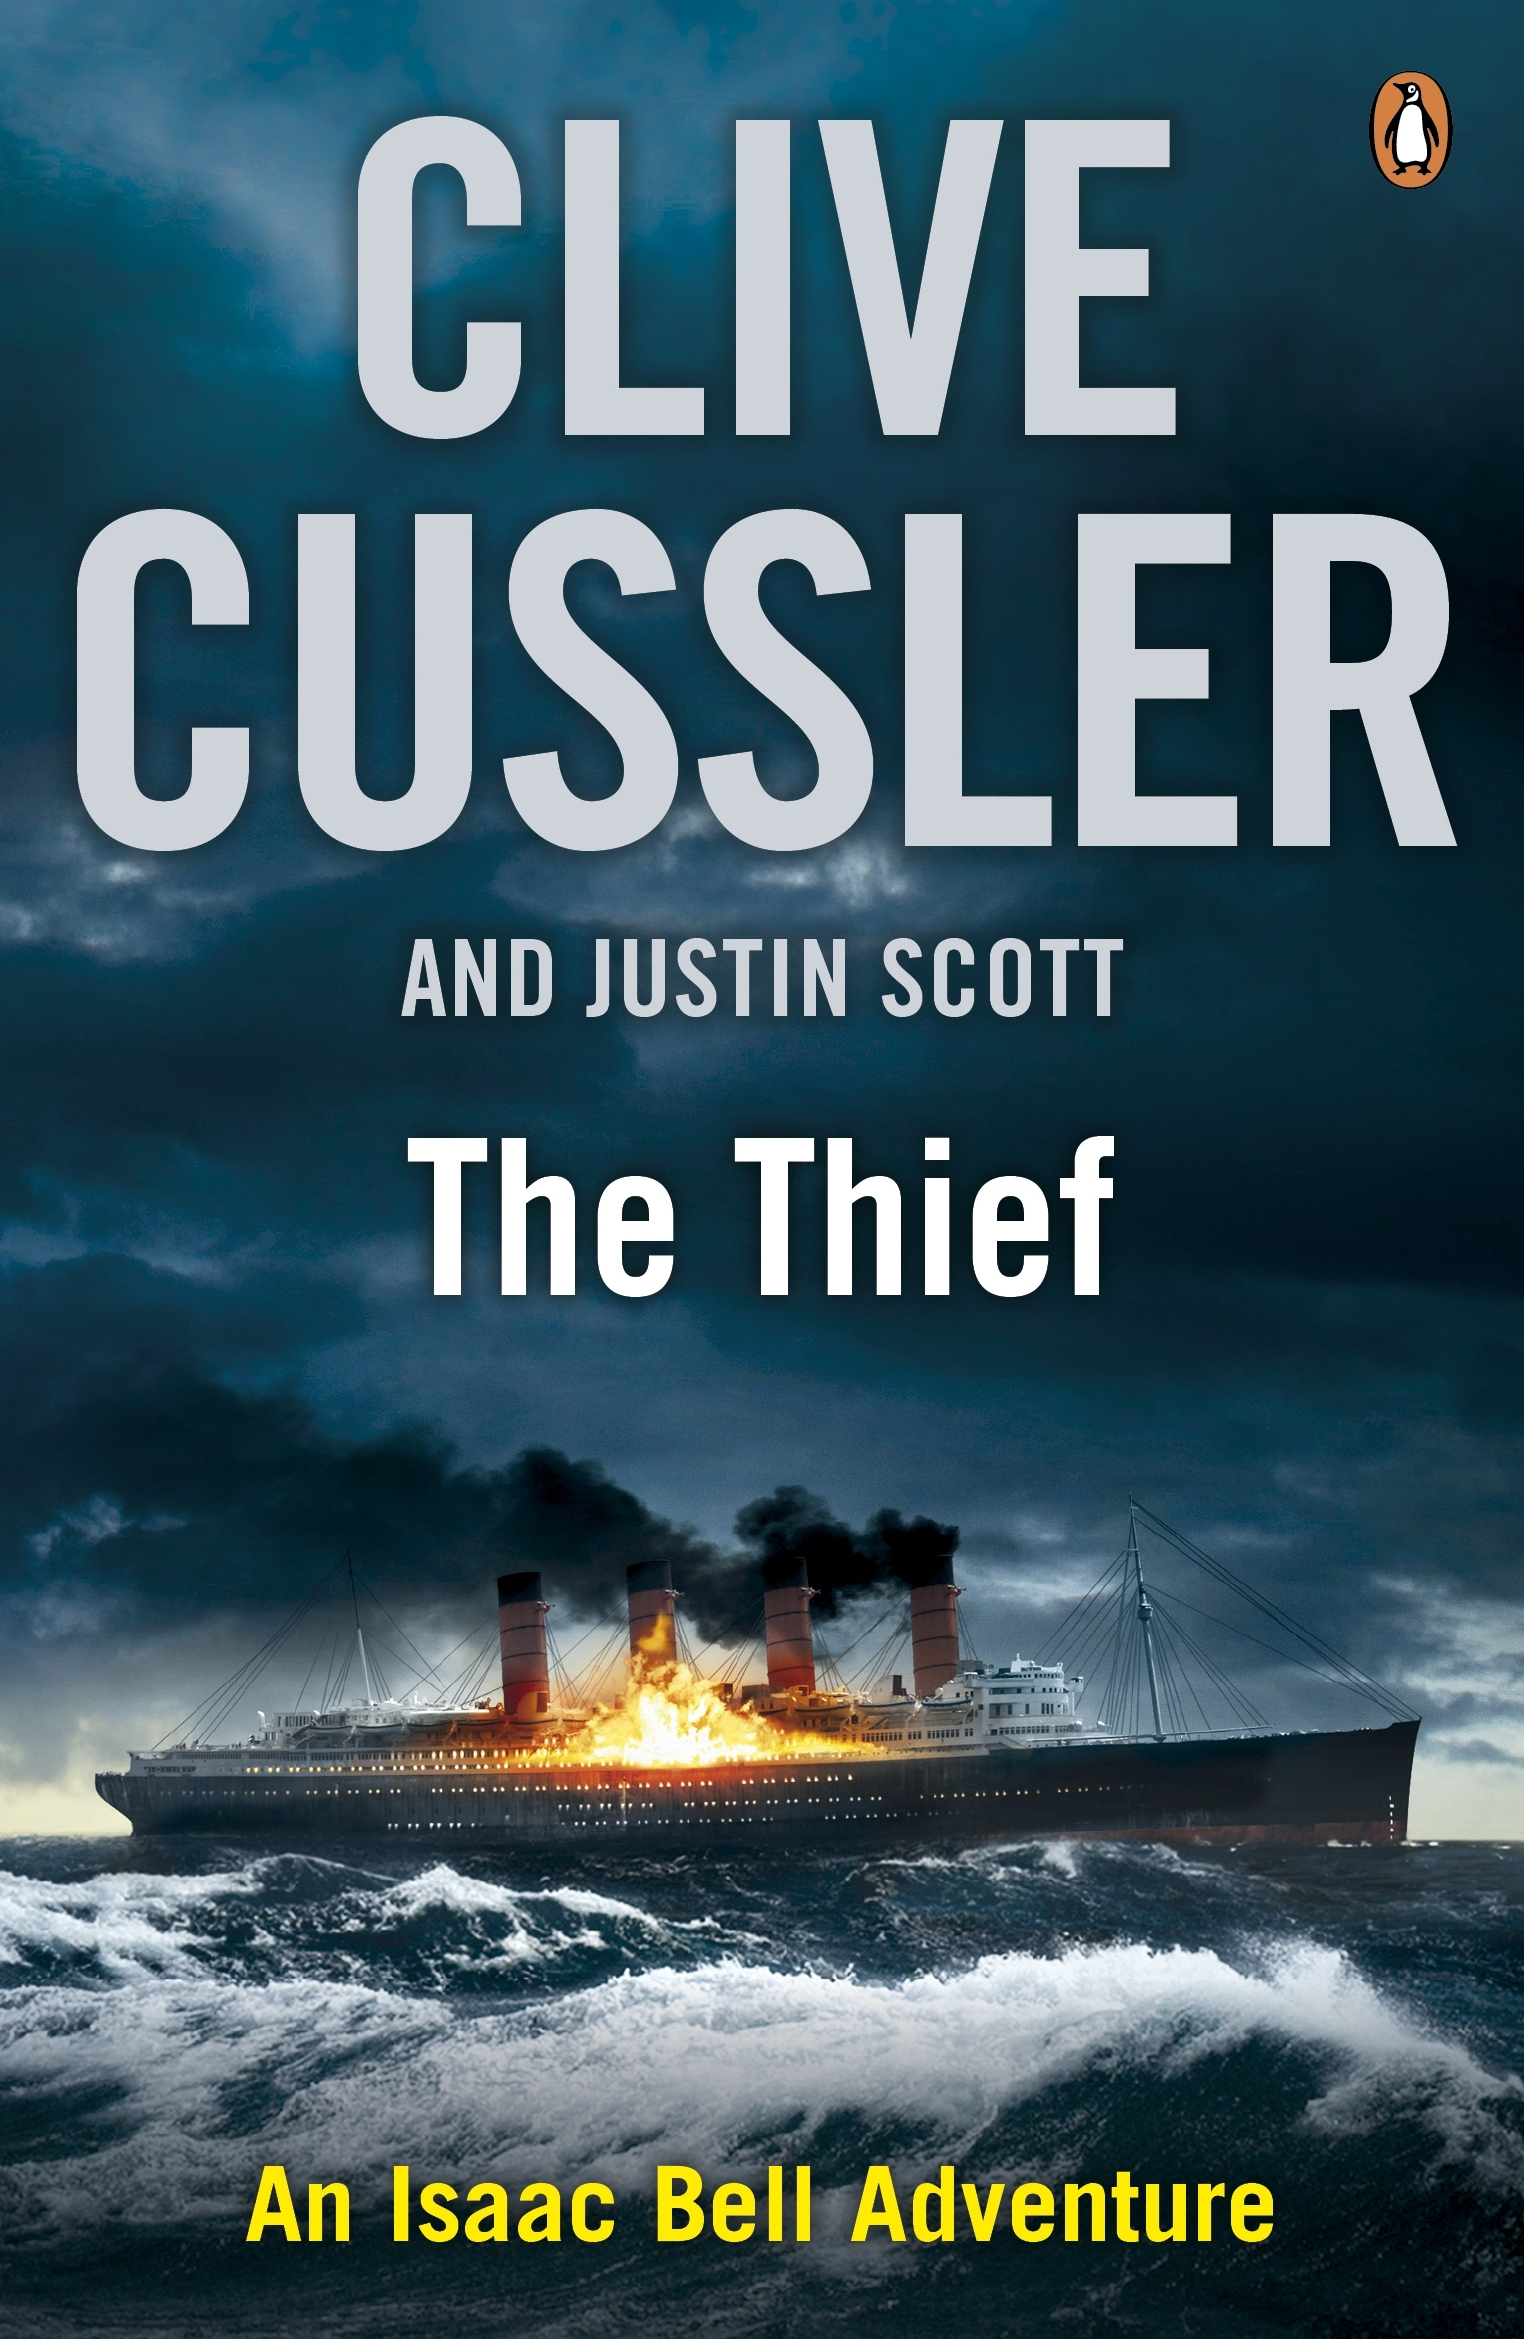 The Thief By Clive Cussler  Penguin Books New Zealand. Cheapest Bankruptcy Filing Emory 1 Year Mba. Foreclosure Deed In Lieu Delray Beach Storage. Milan Serviced Apartments Trade Schools In La. Office Rental Insurance Locksmith Melbourne Fl. Mini Cooper Repair Atlanta Salesforce And Crm. Acrylic Literature Display Fcc Cfr 47 Part 15. Credit Transfer Credit Cards. Progressive New Orleans Free Download Payroll